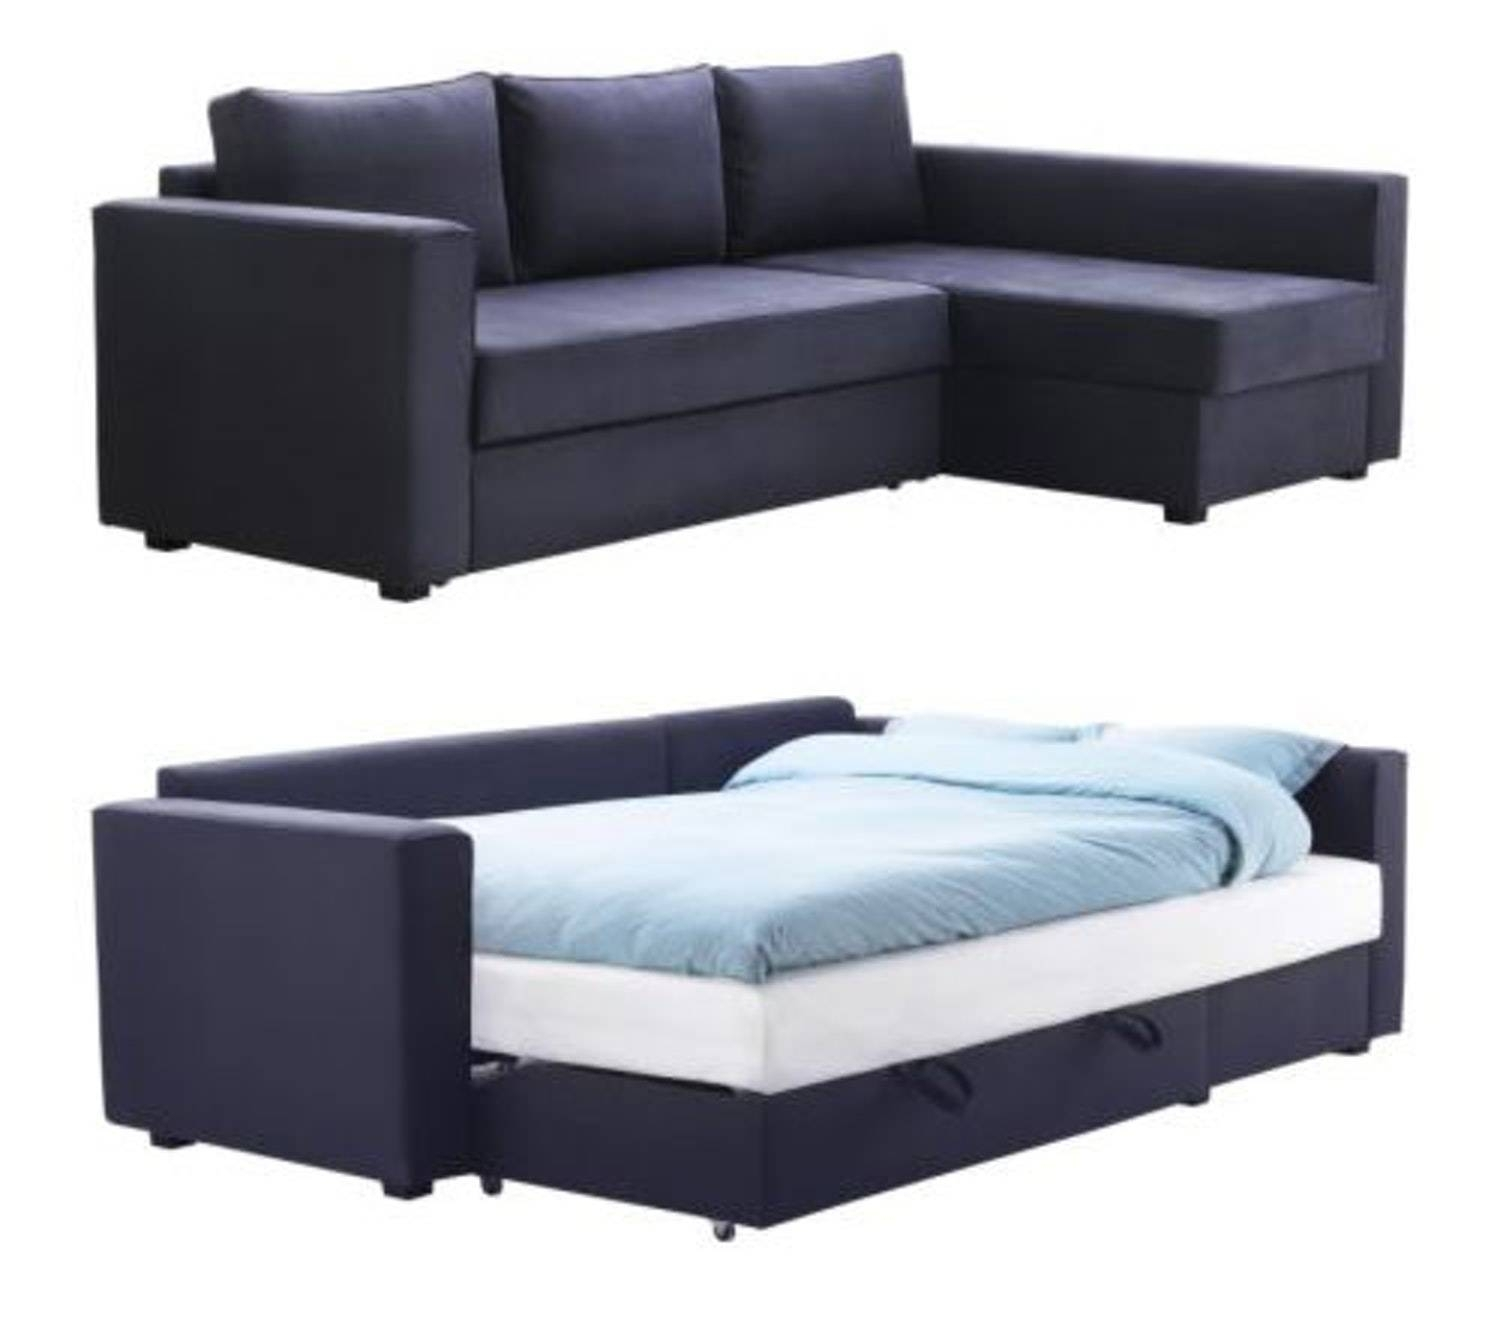 sofa bed buy foter rh foter com buy cheap sofa set online buy cheap sofa storage plastic bag homedepot